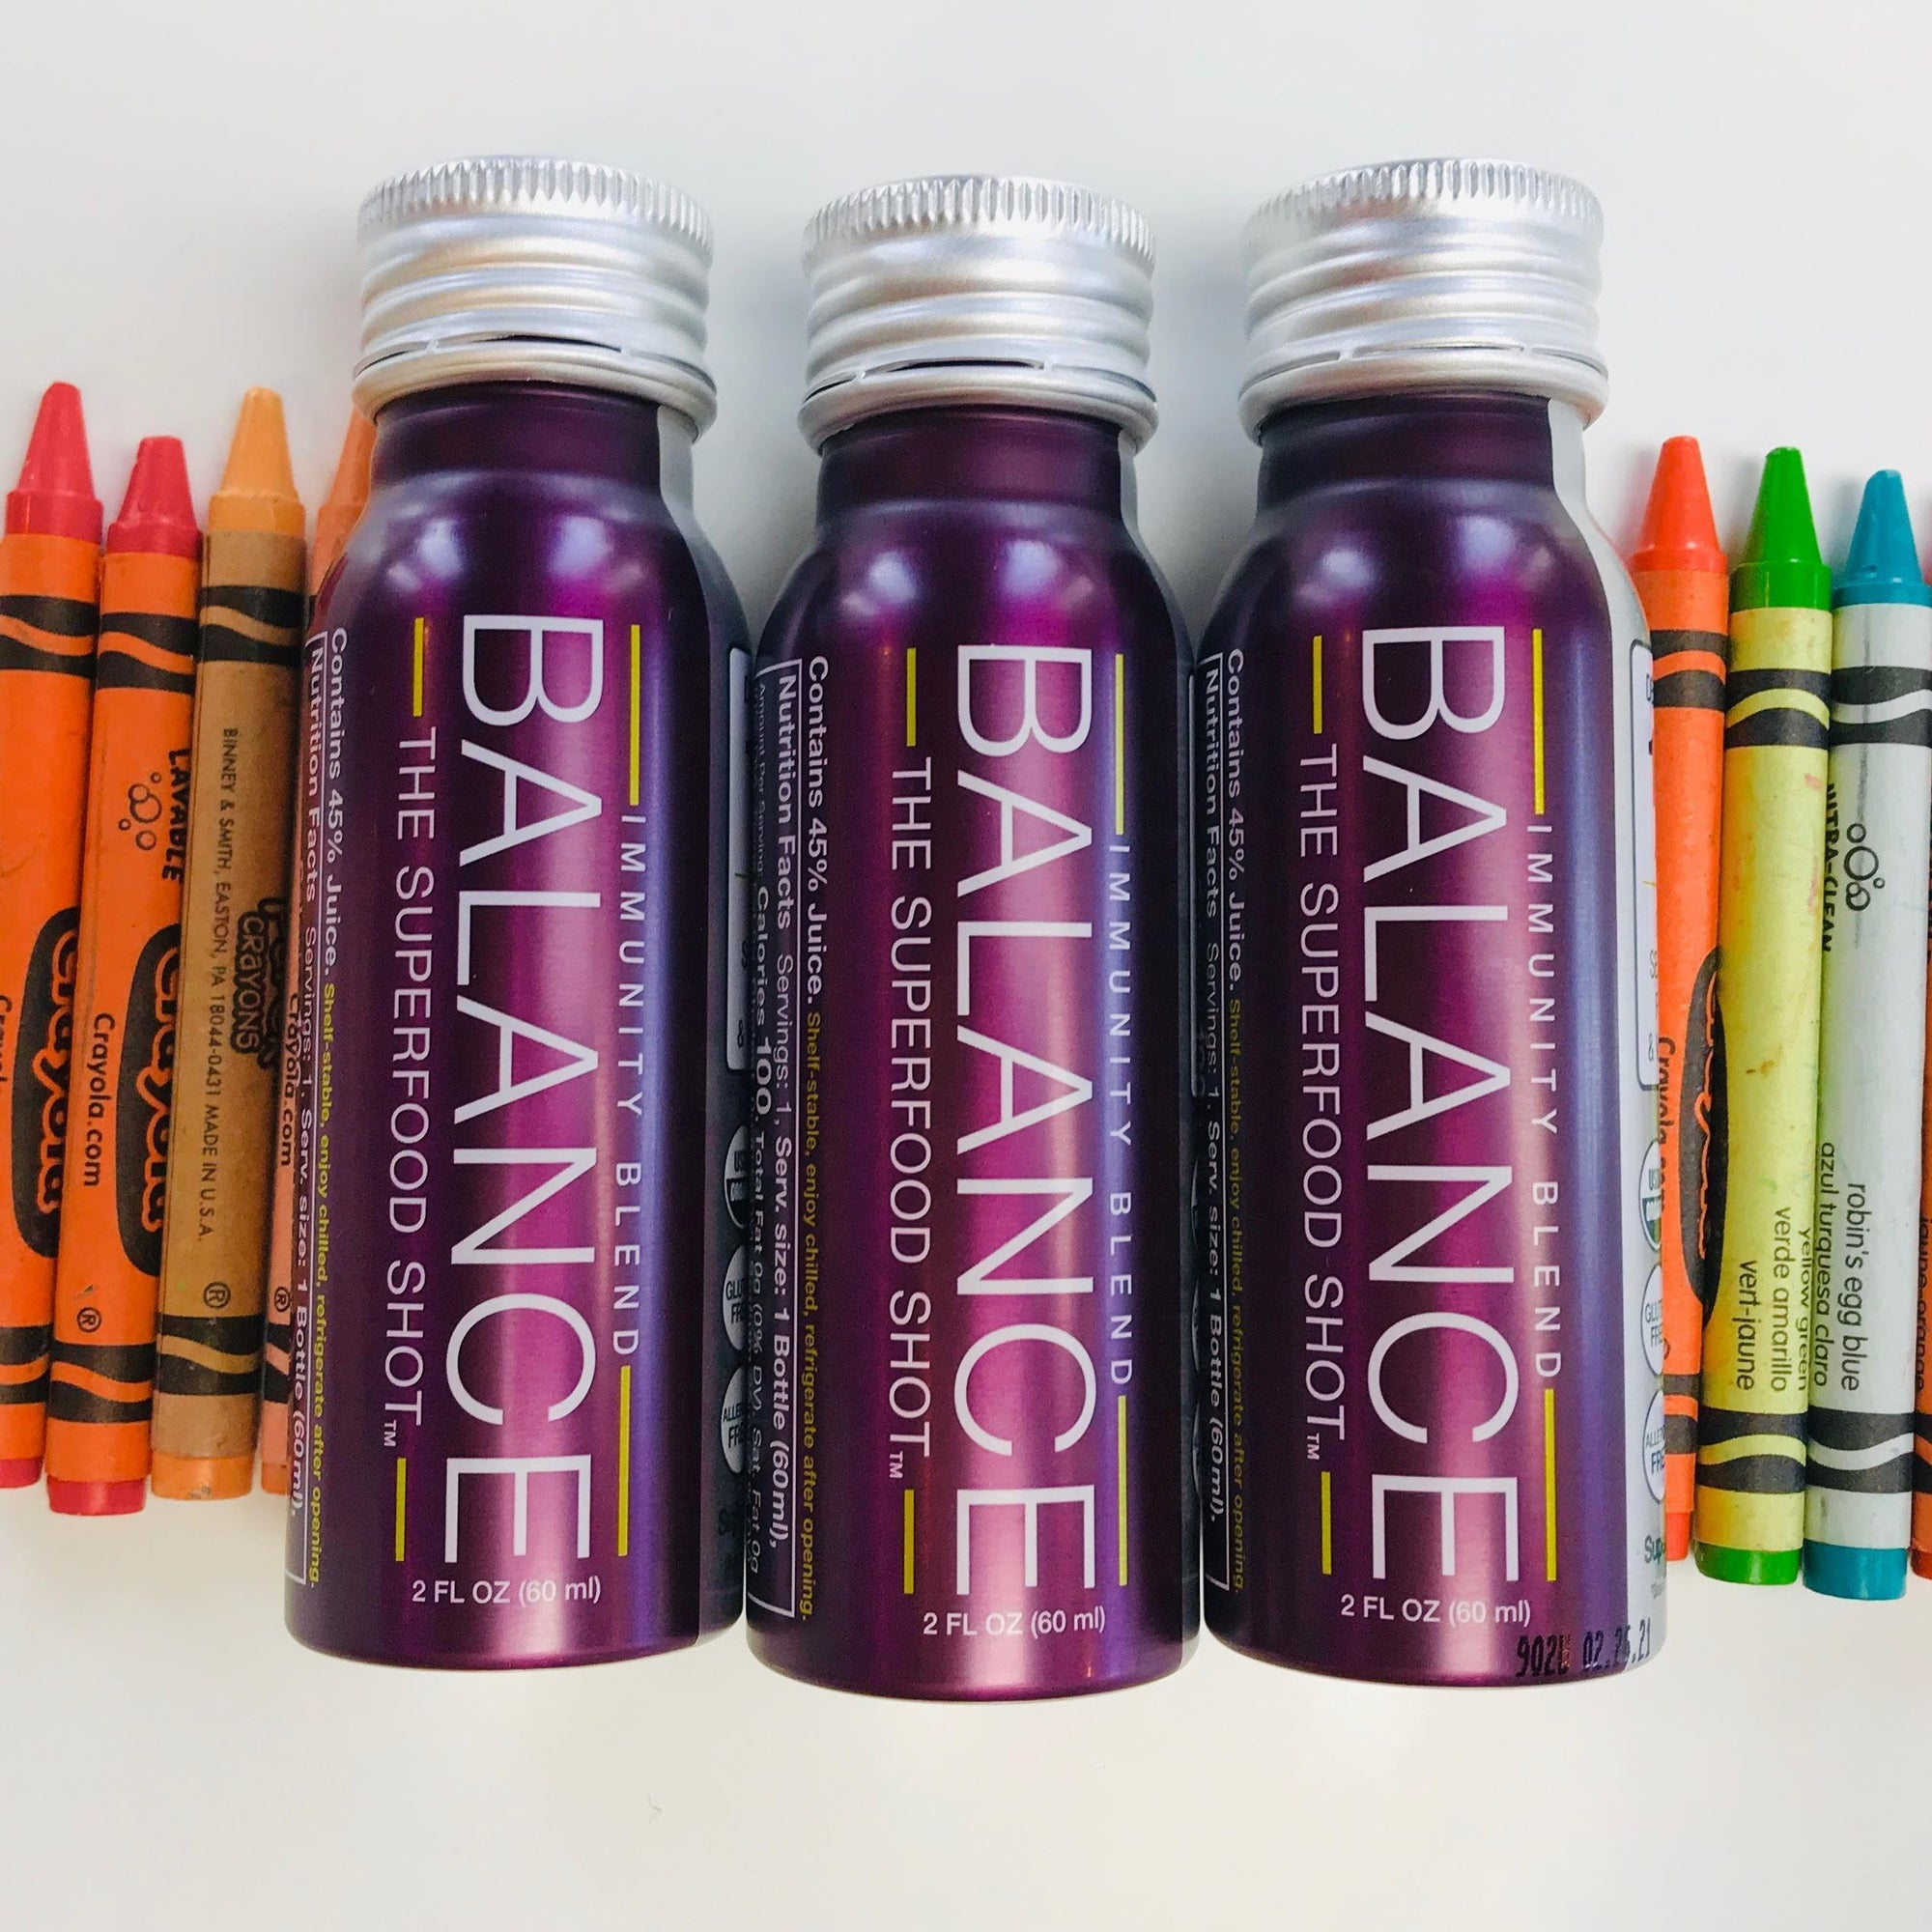 Balance the Superfood Shot Makes Going Back to School a Breeze